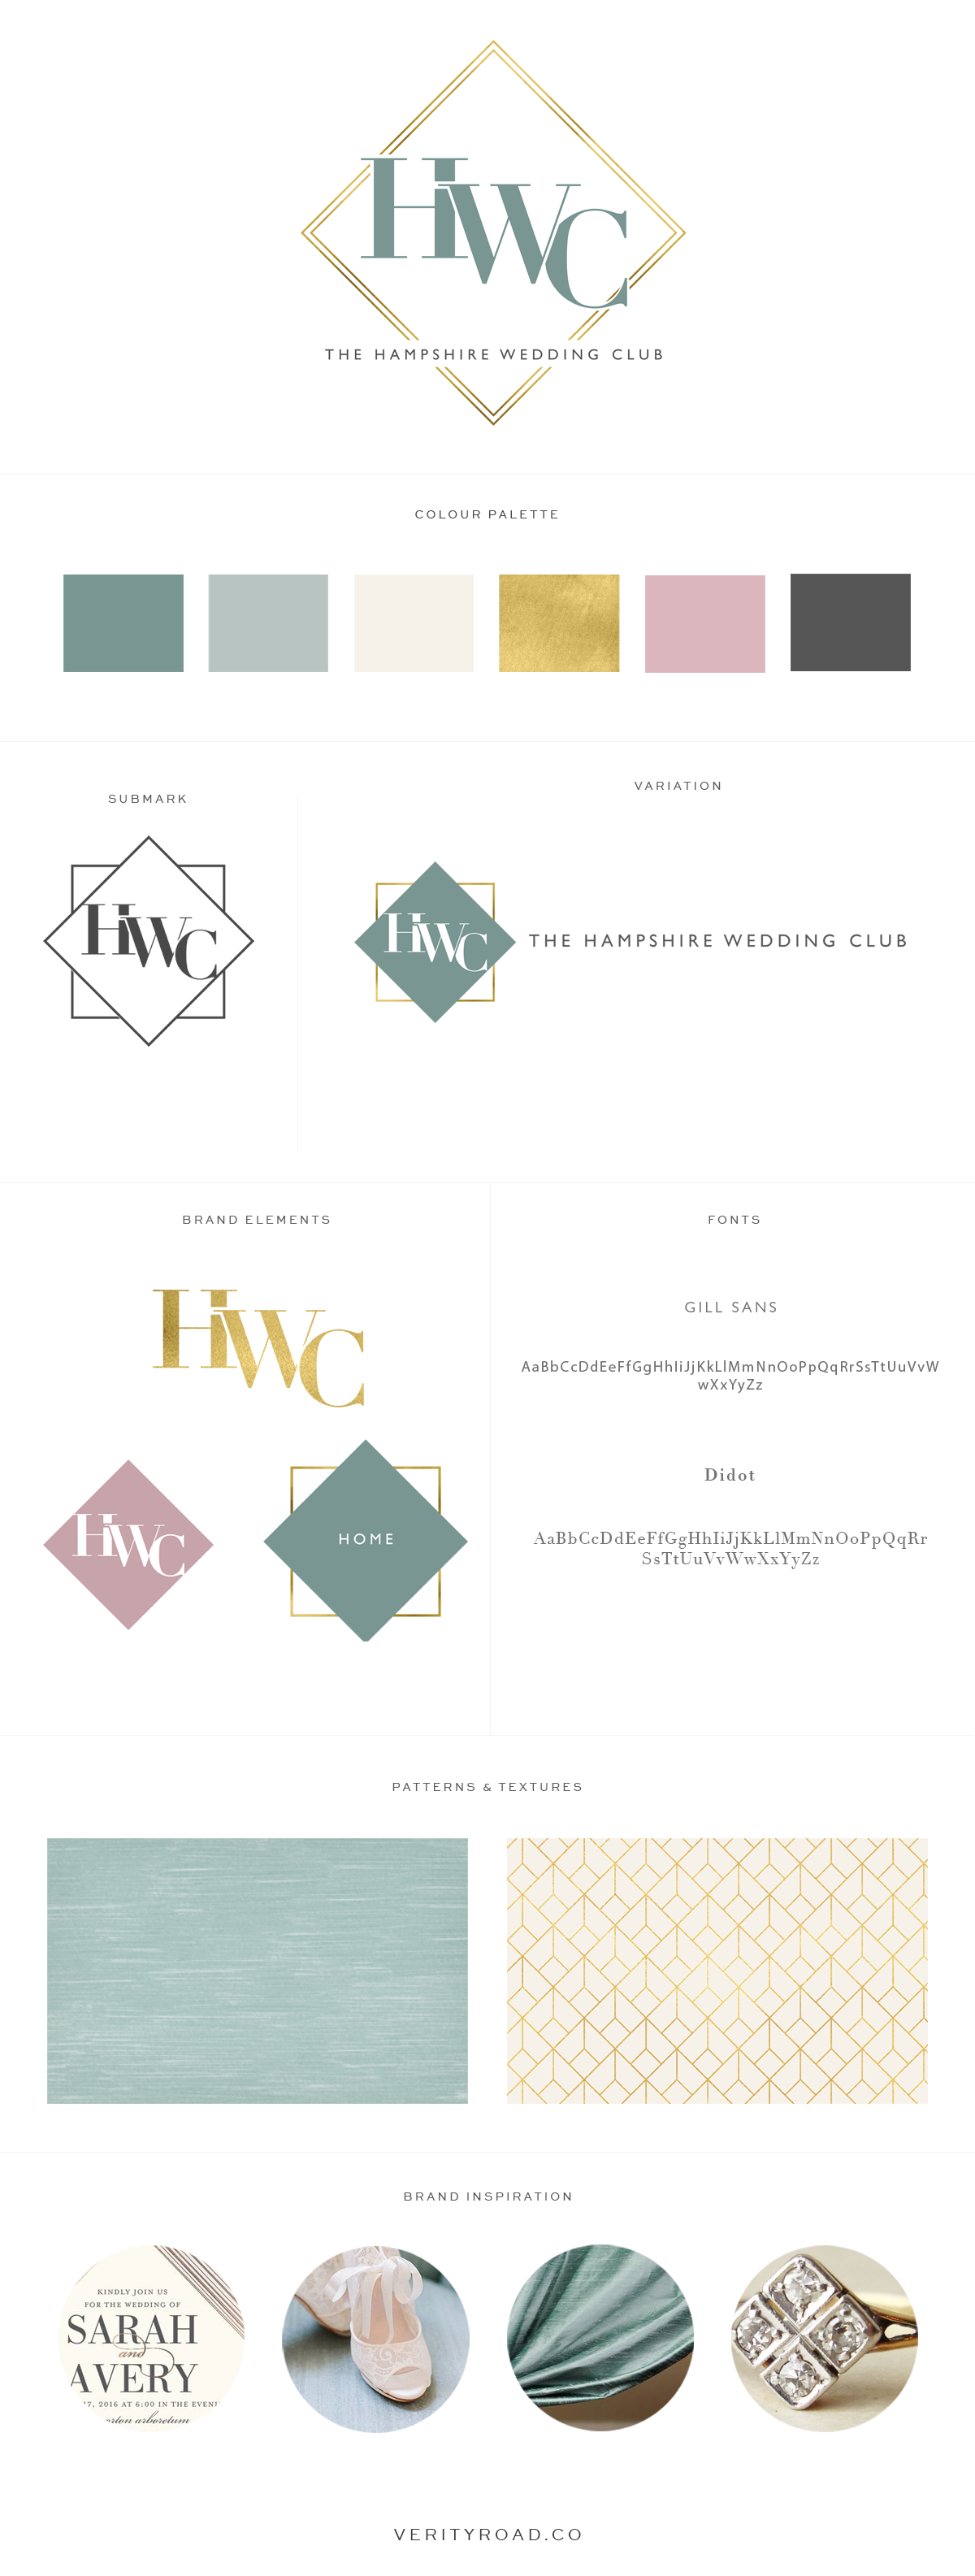 BRAND board for THE HAMPSHIRE WEDDING CLUB, WEDDING PROFESSIONALS, WEDDING SUPPLIERS, PHOTOGRAPHERS, WEDDING BUSINESS, WEDDING PLANNERS, FLORISTS. luxury feminine brand styling and web design for female entrepreneurs FROM VERITY ROAD. FEMININE BRANDING, LOGO, SUBMARK, BRAND ELEMENTS, Inspiration board of typography, serif, CHARCOAL, DUSTY ROSE, TEAL, MUTED MINT, gold, color palette,  pattern, TEXTURE, ROMANTIC BRIDE, LUXURY WEDDING, ELEGANT HIGH-END ROMANCE, business owner, blogger, watercolor, geometric shape. See more for INSPIRATION BOARD, brand style guide, social media branding .